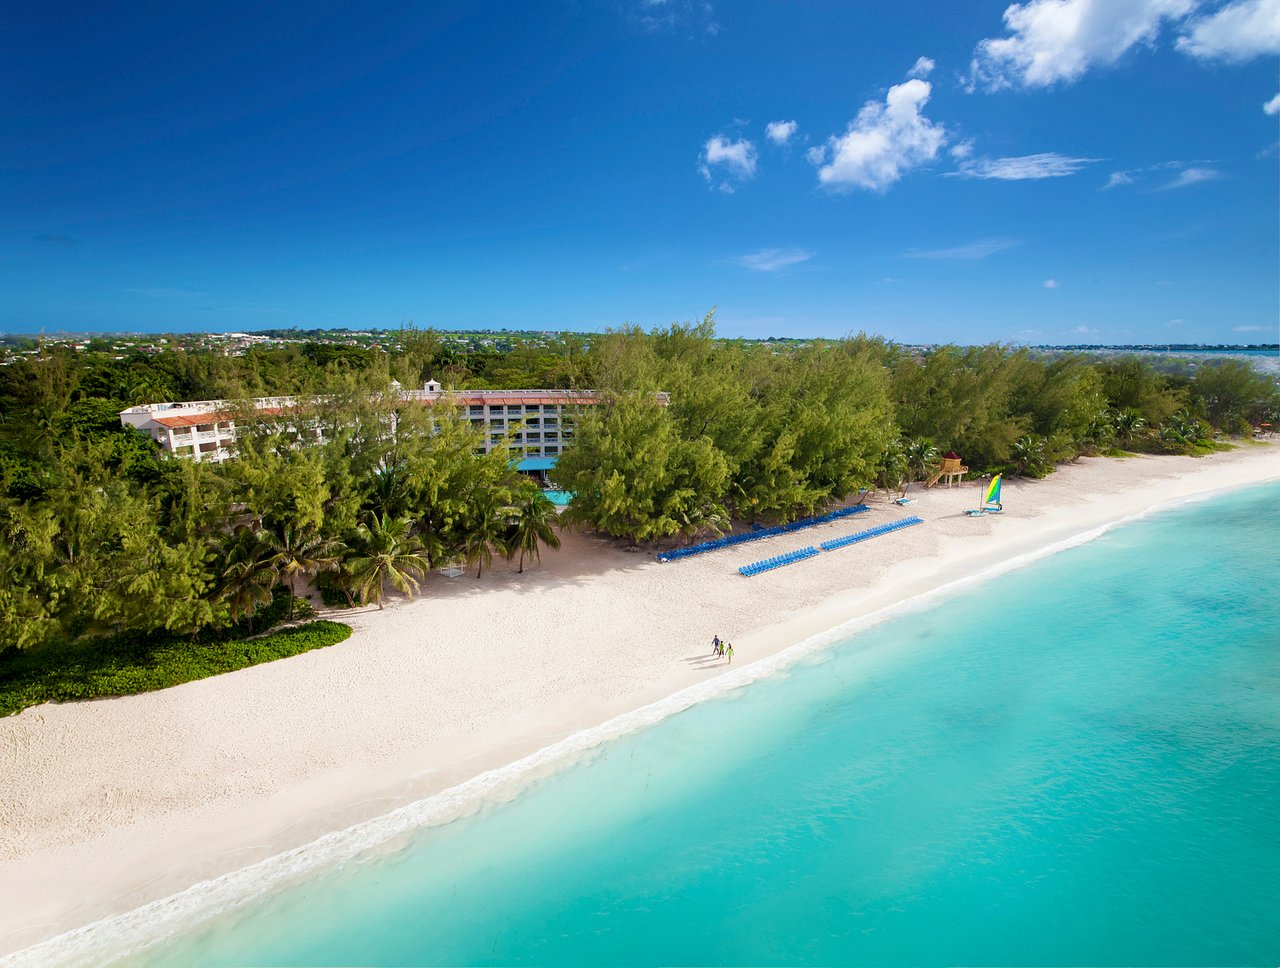 SANDALS BARBADOS - Updated 2019 Prices & Resort Reviews (St ... on barbados all inclusive map, dover beach barbados map, crane beach barbados map, barbados boardwalk map, barbados caribbean map, coco cay bahamas map, la toc resort map, accra beach barbados map, st. michael barbados map, barbados visitors map, barbados street map, bgi airport map,